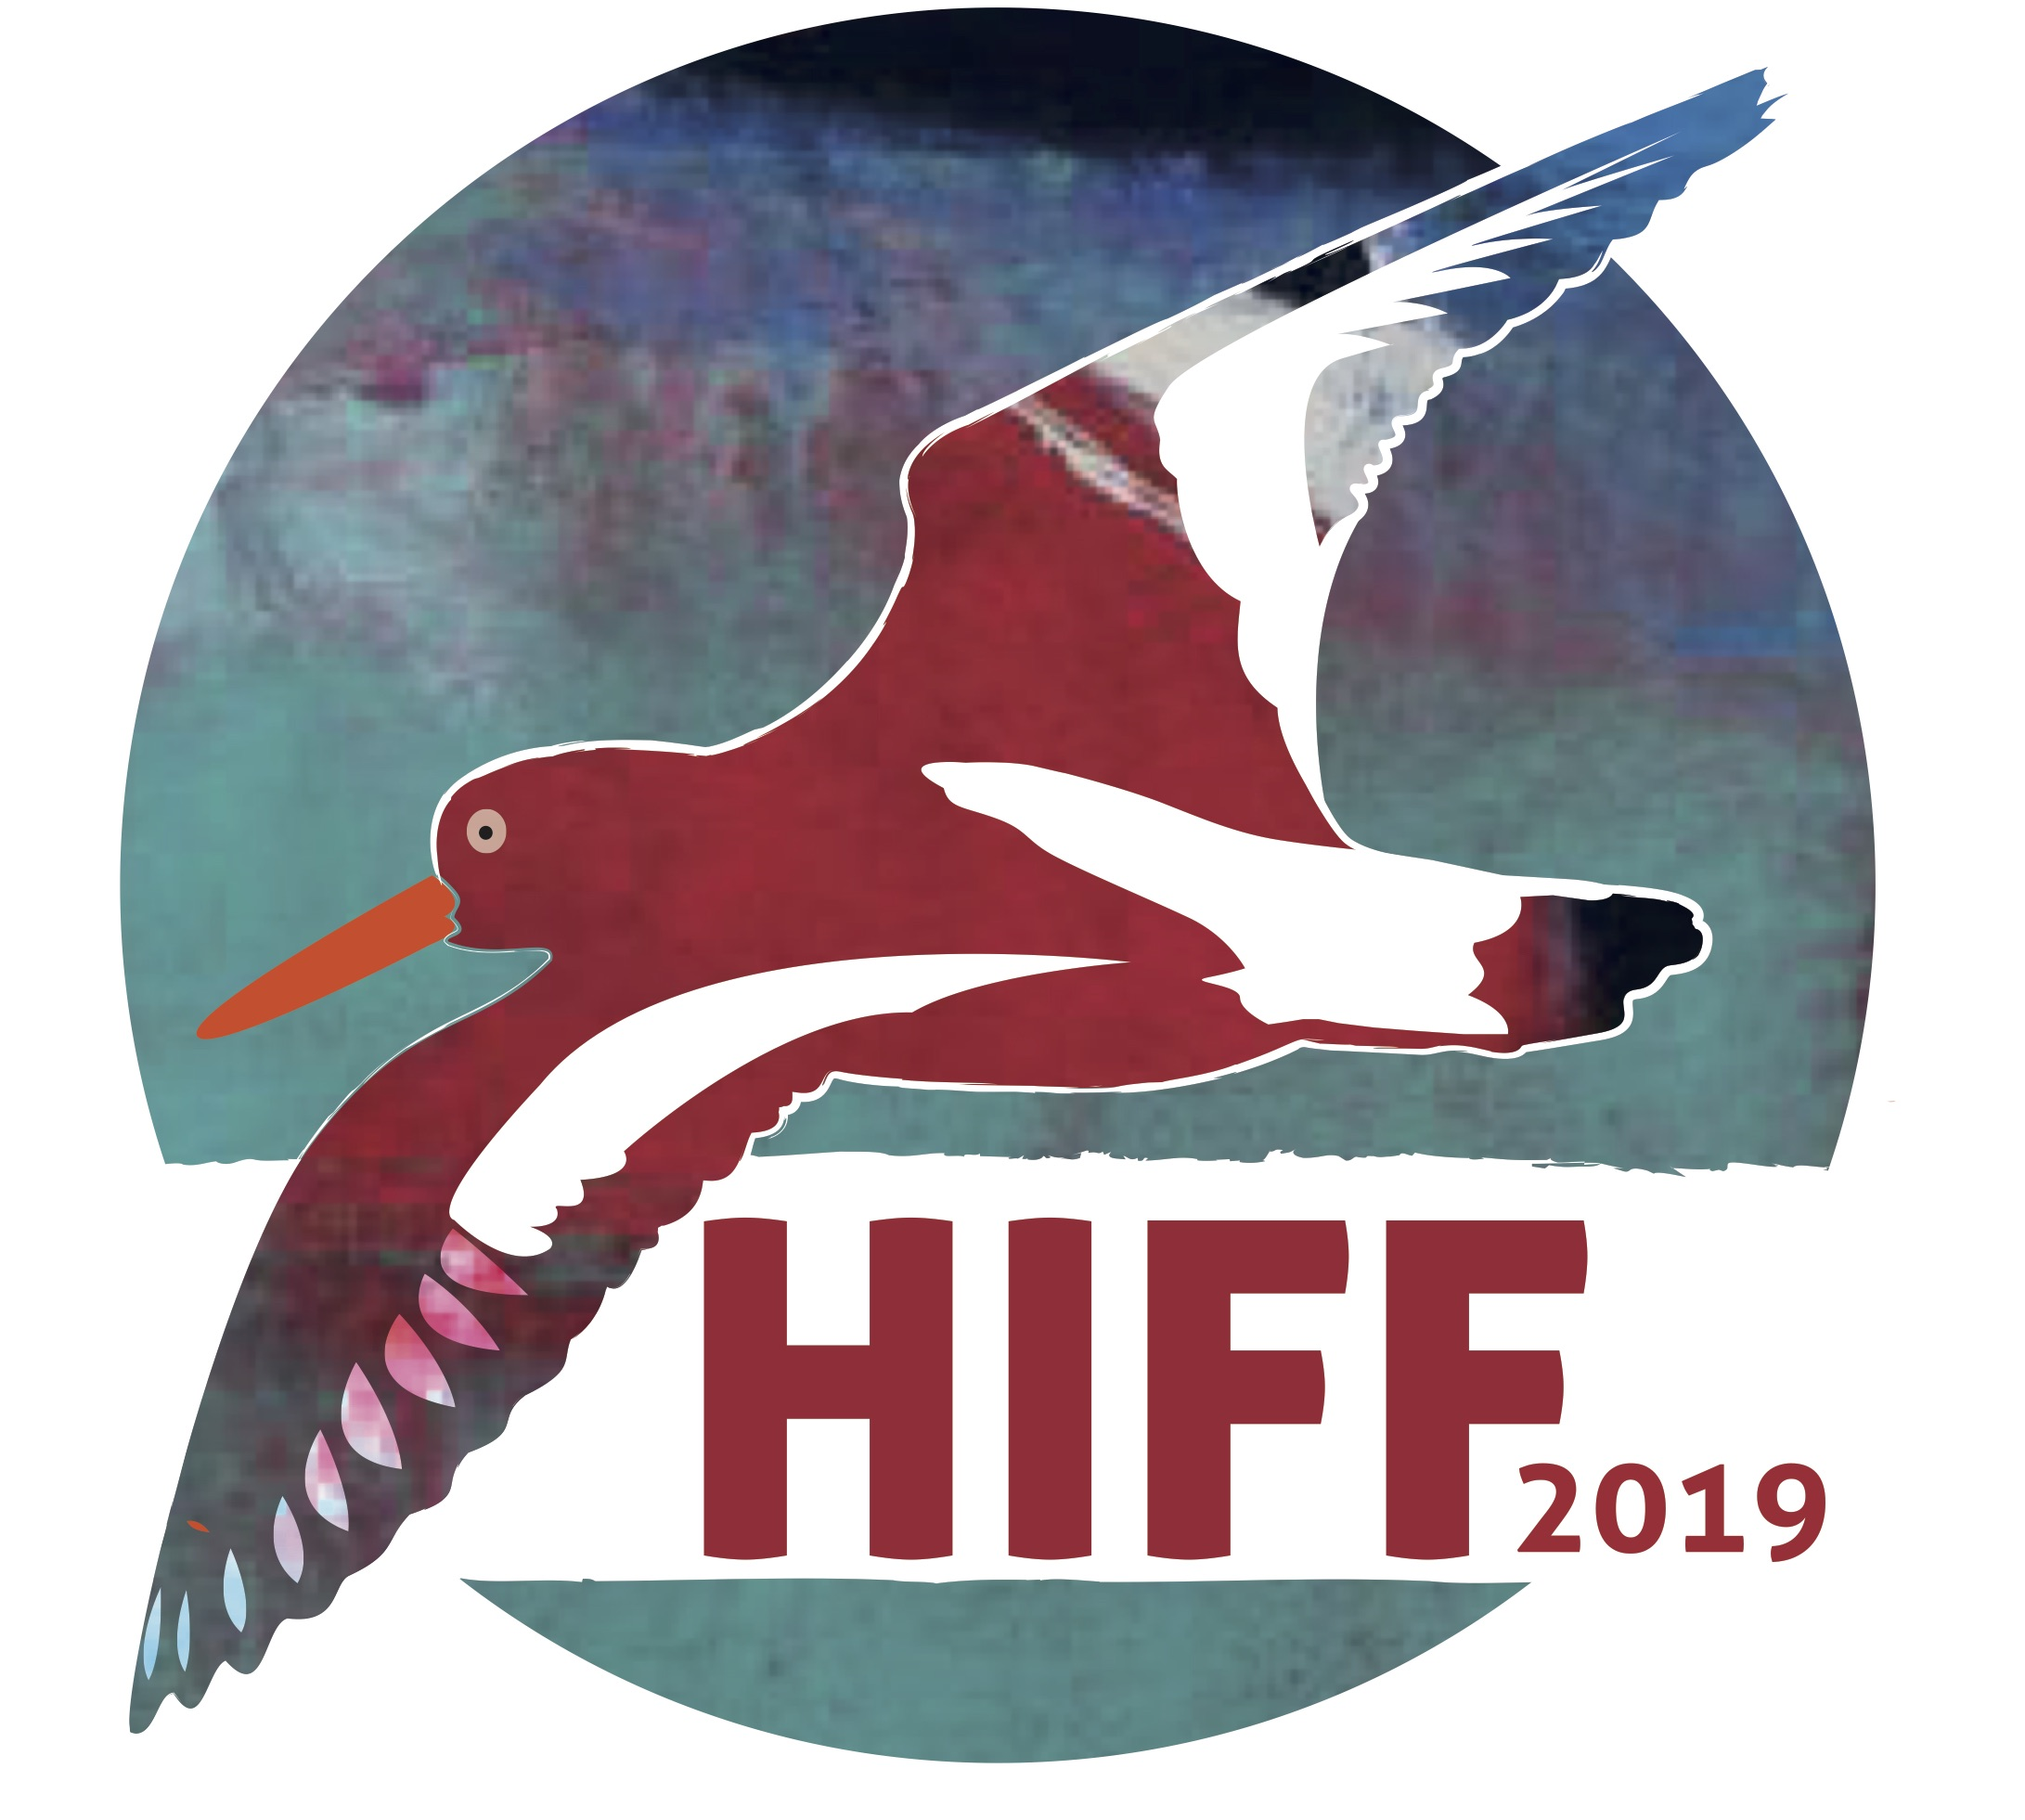 Preparations are well underway as the Hebrides International Film Festival gears up for 2019 installment